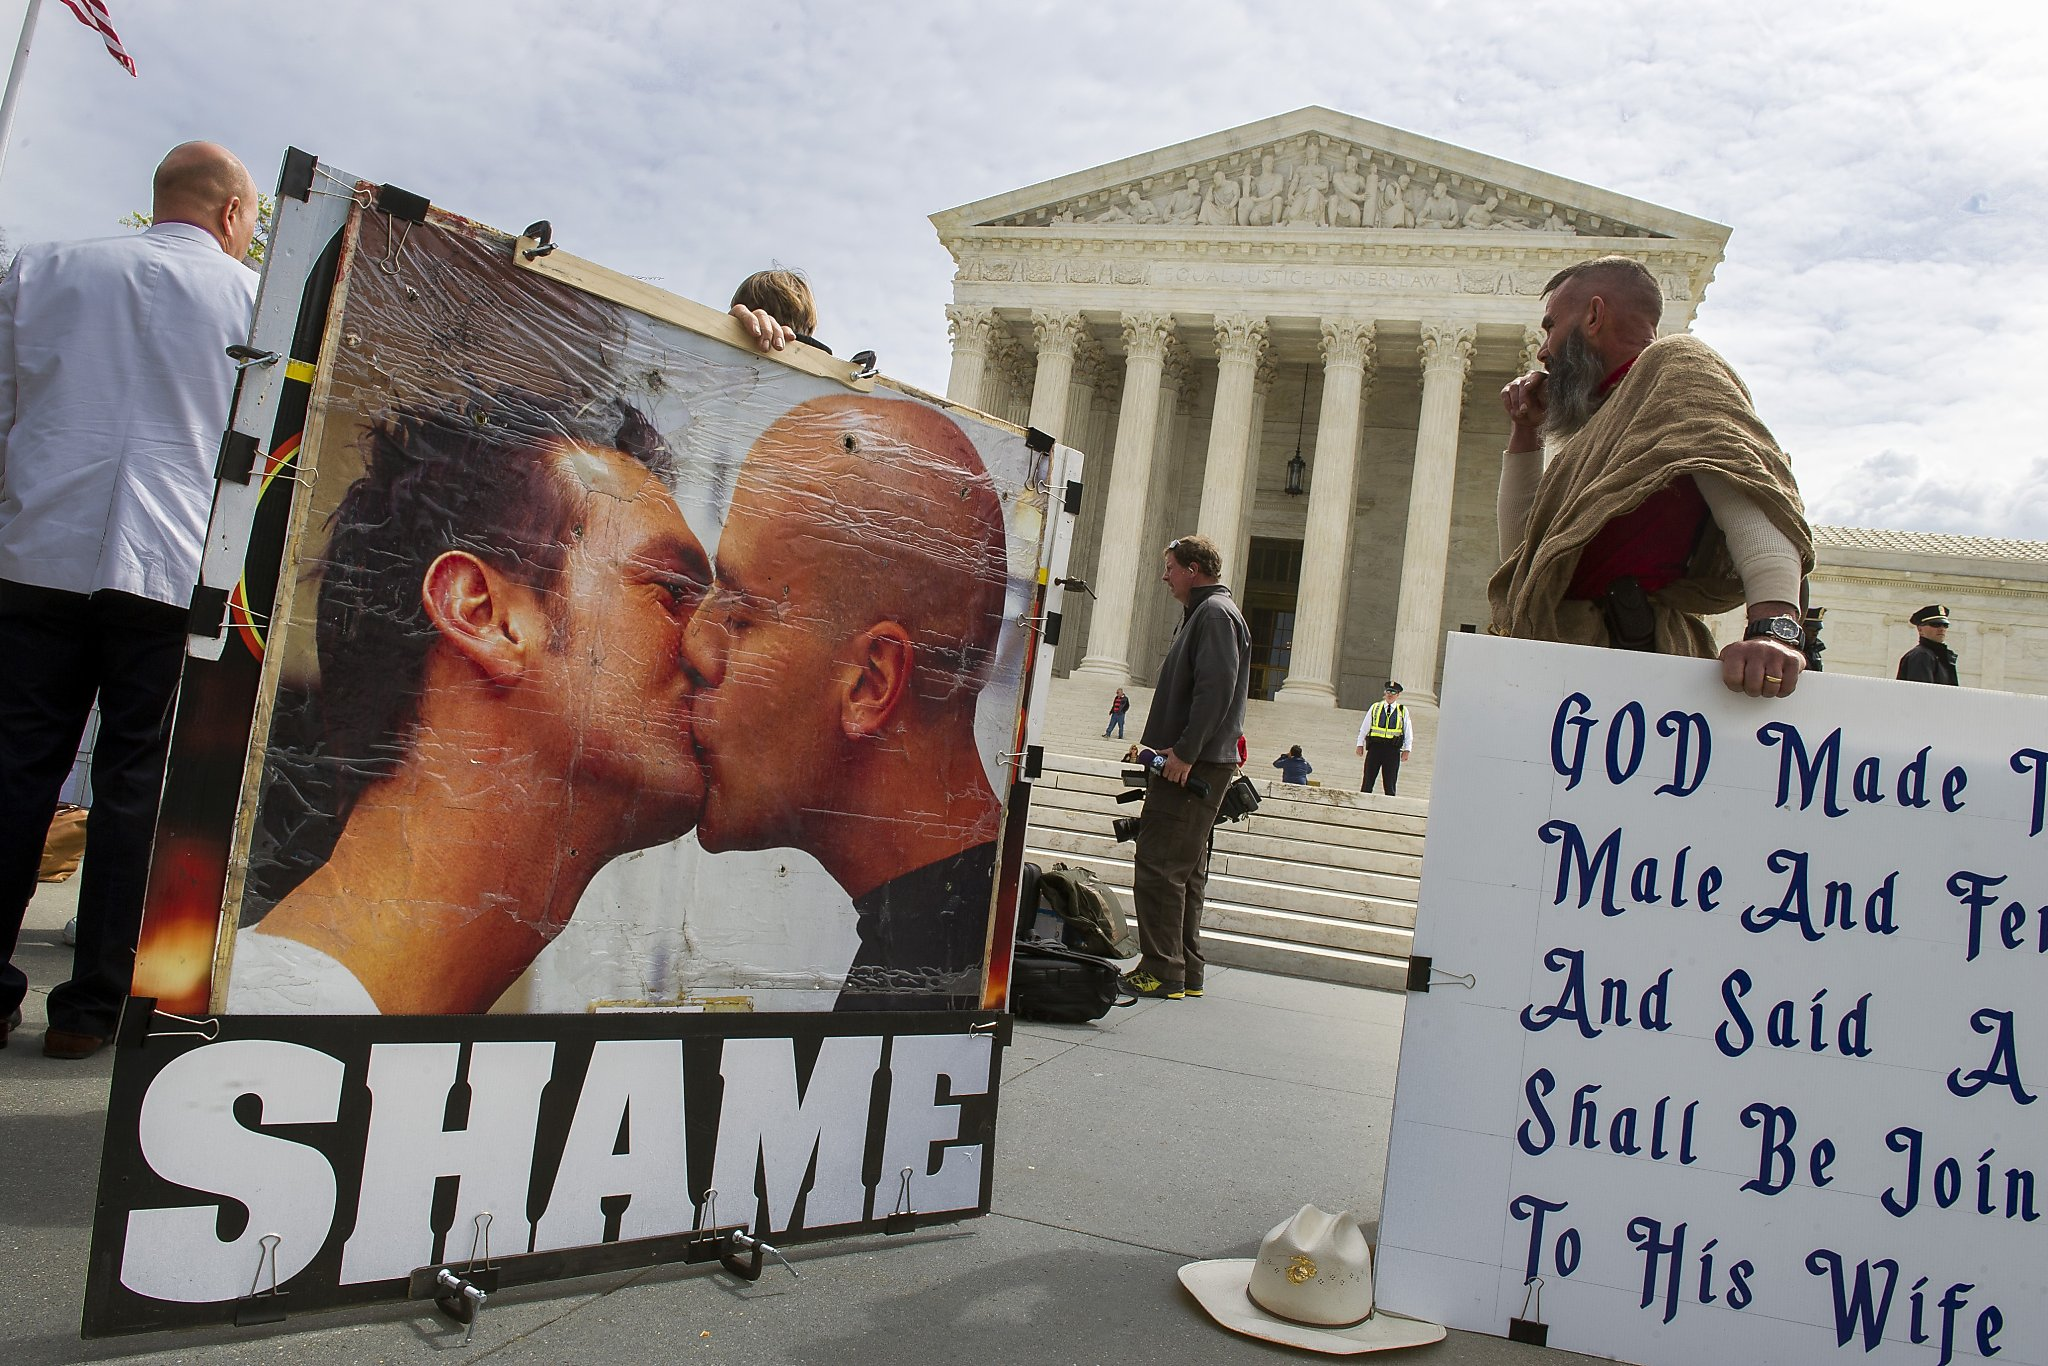 The role of public opinion in the supreme court decision on gay marriage legality